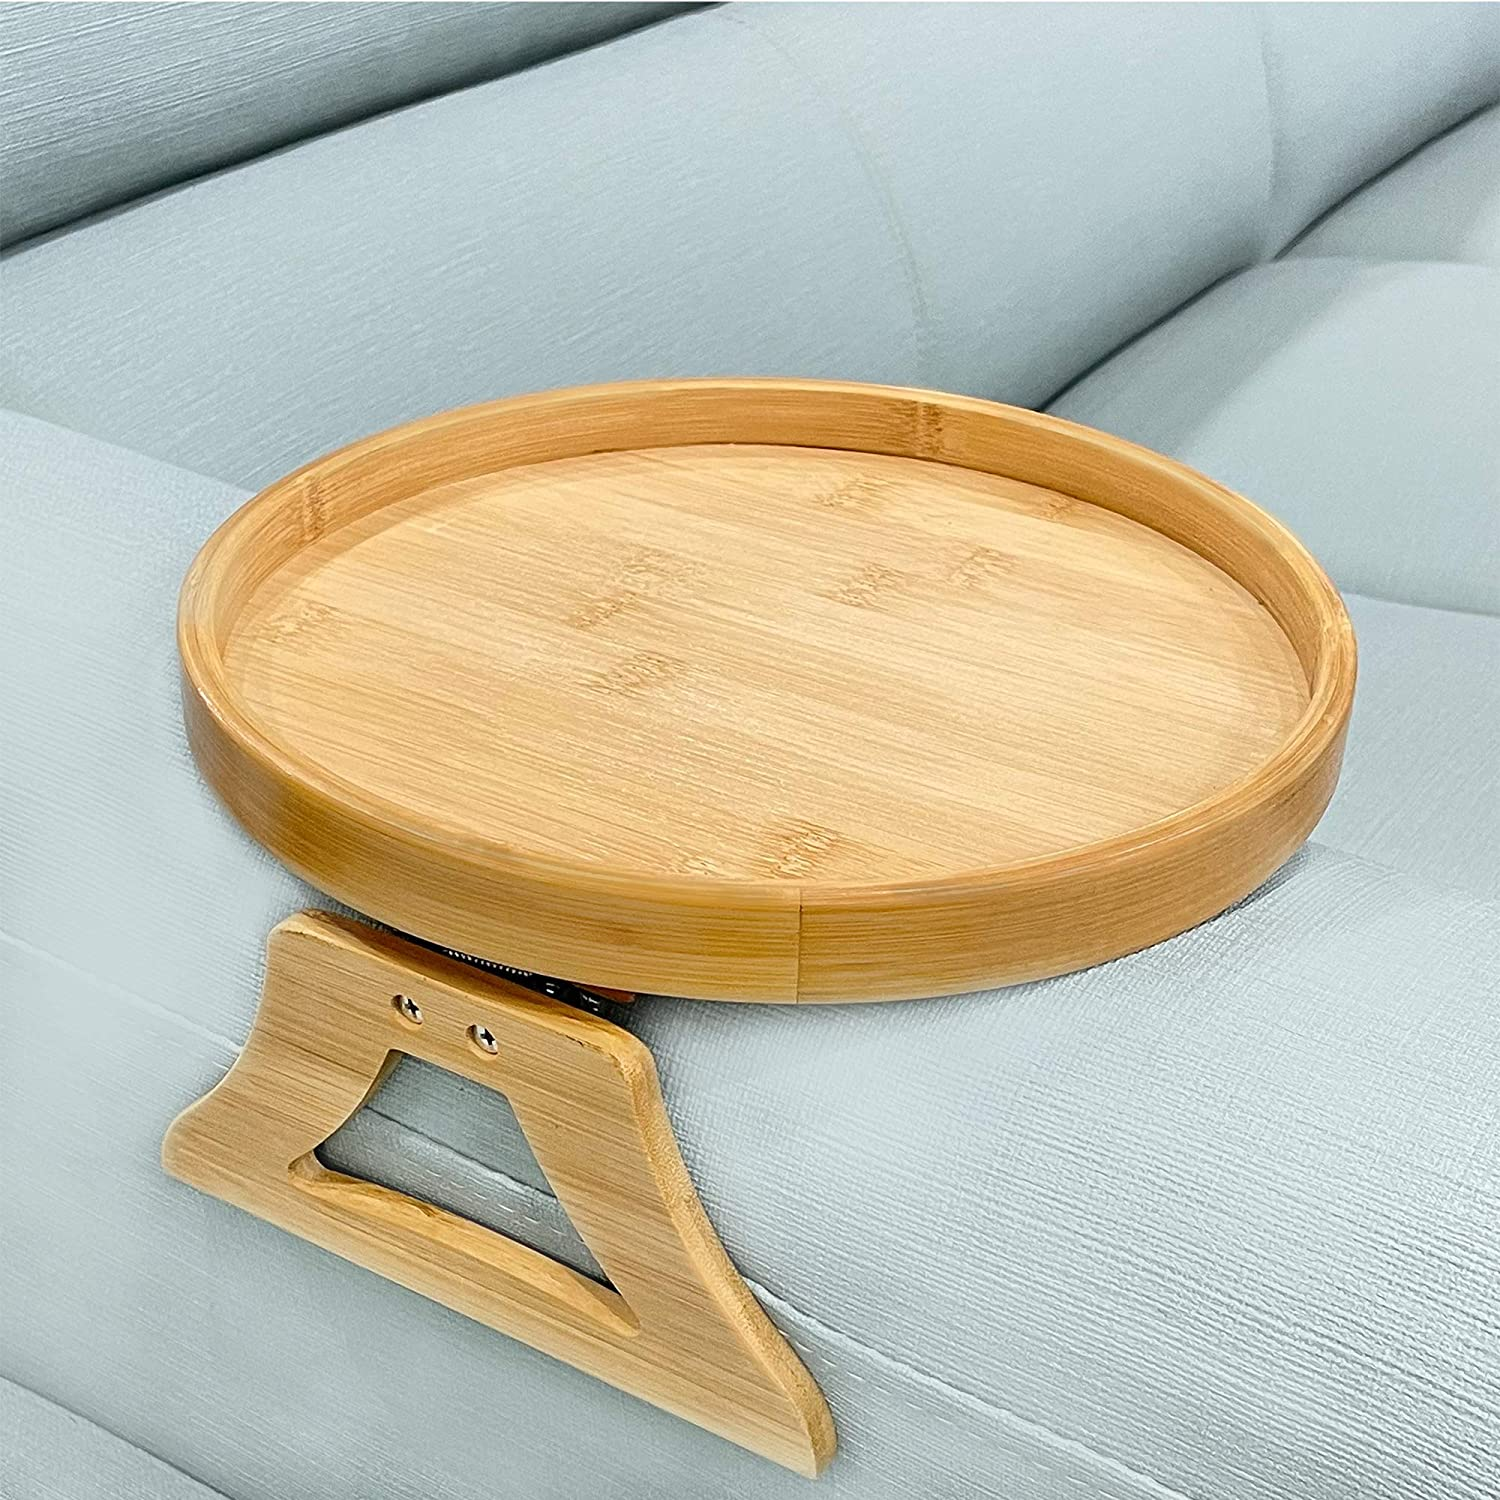 Sofa Arm Clip Tray Side Table Ranking TOP5 Drinks Max 81% OFF for Gamepa Controls Remote